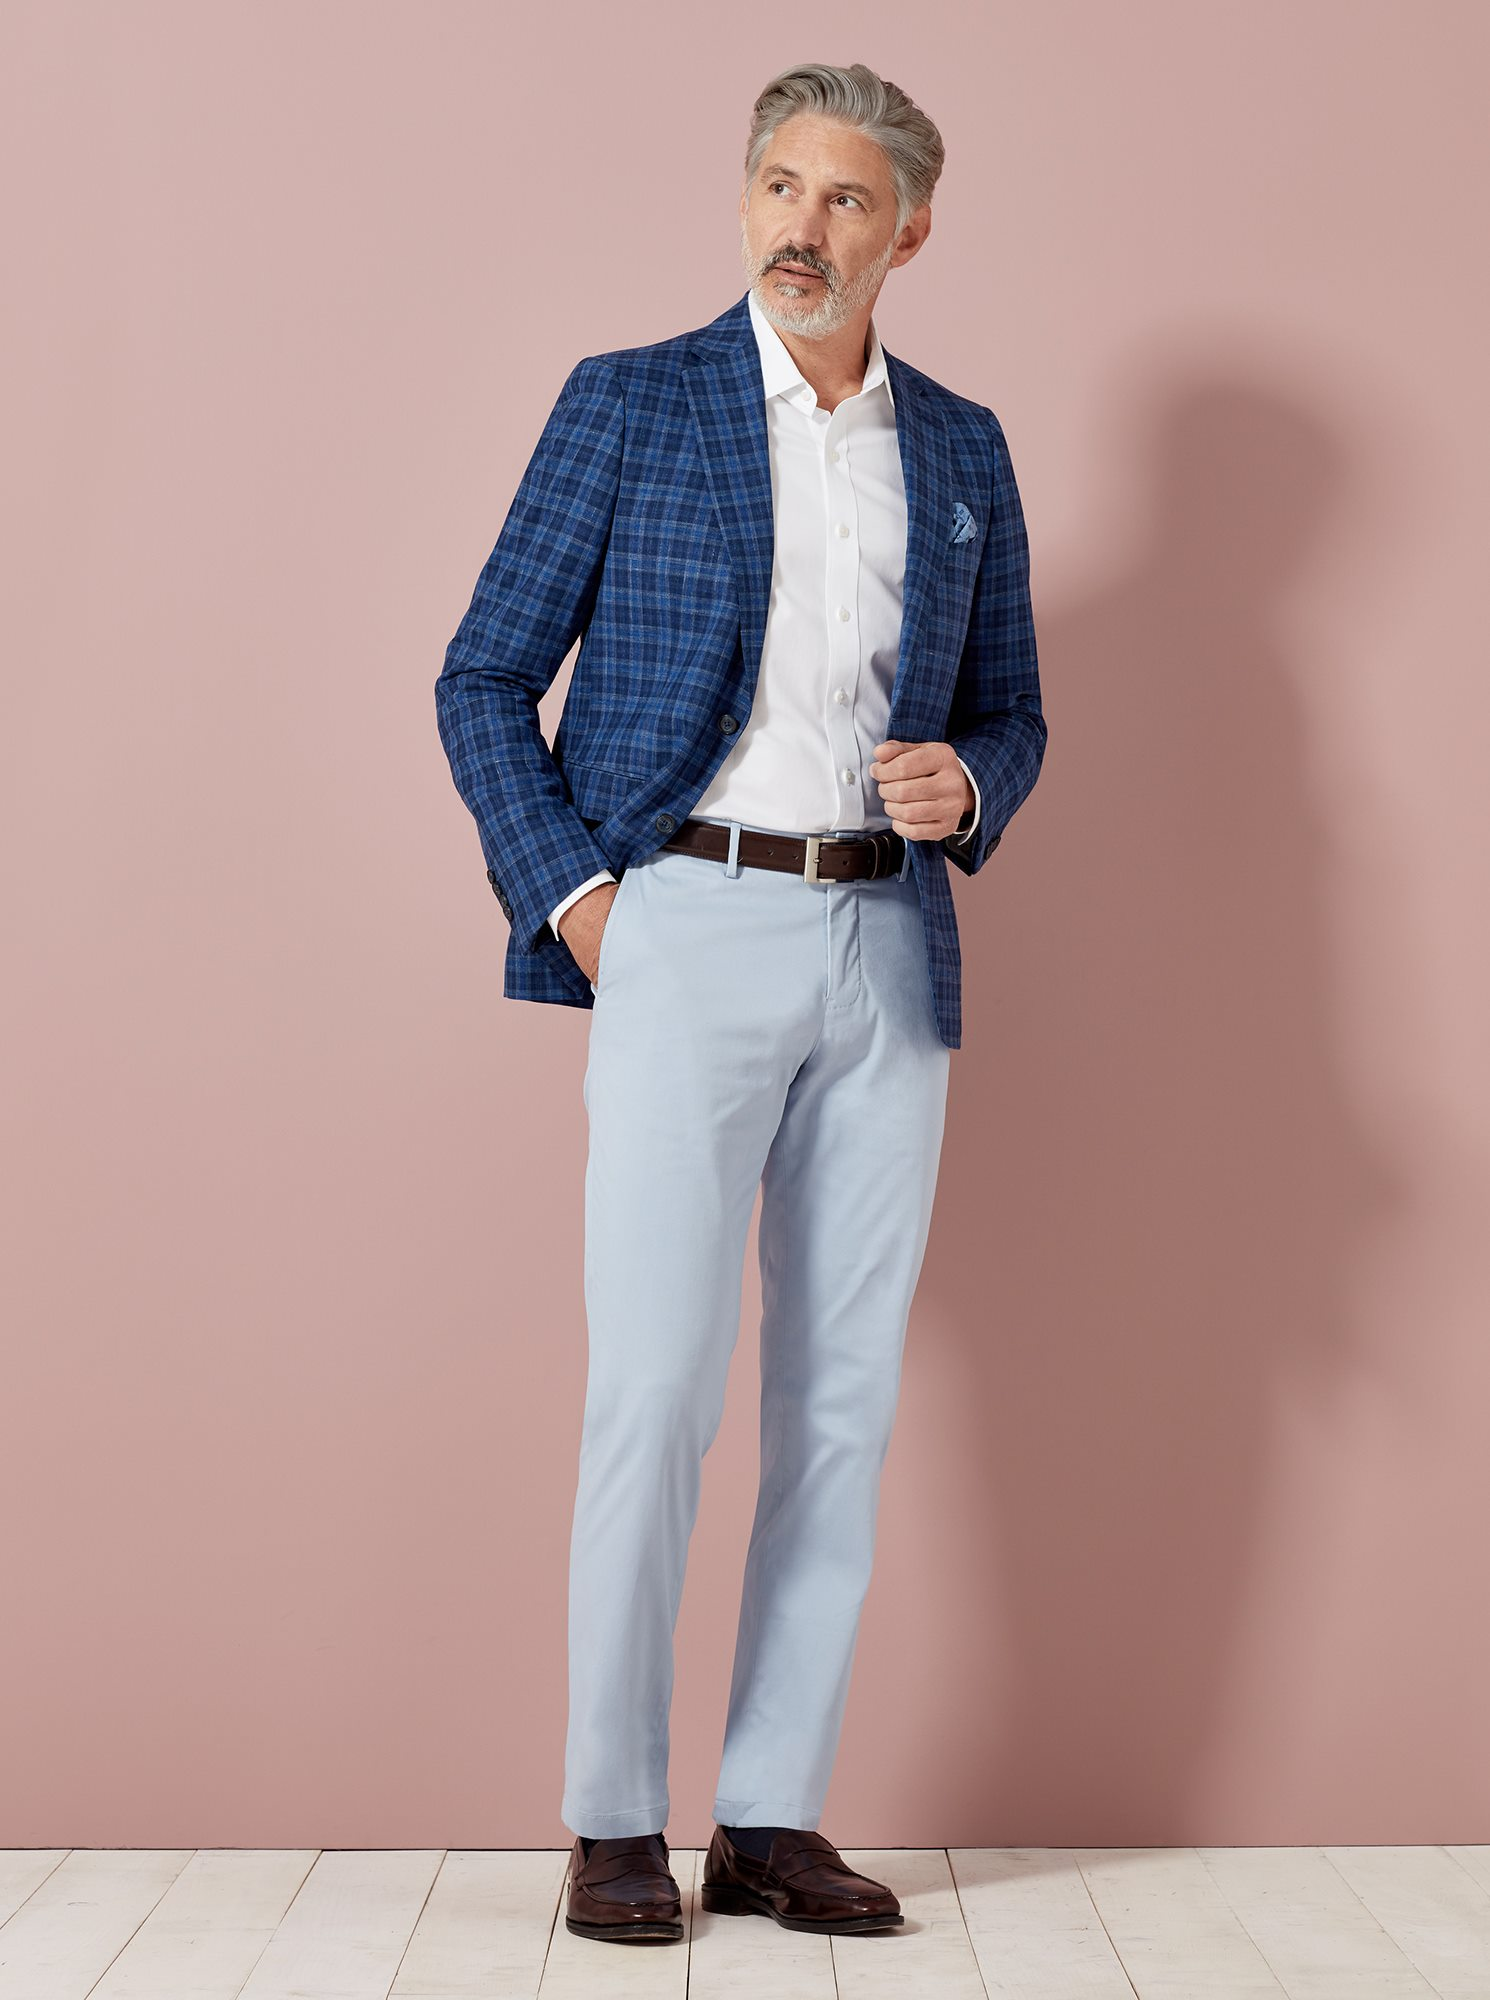 6697b9424 What Color Shirt Goes With Blue Dress Pants « Alzheimer's Network of ...